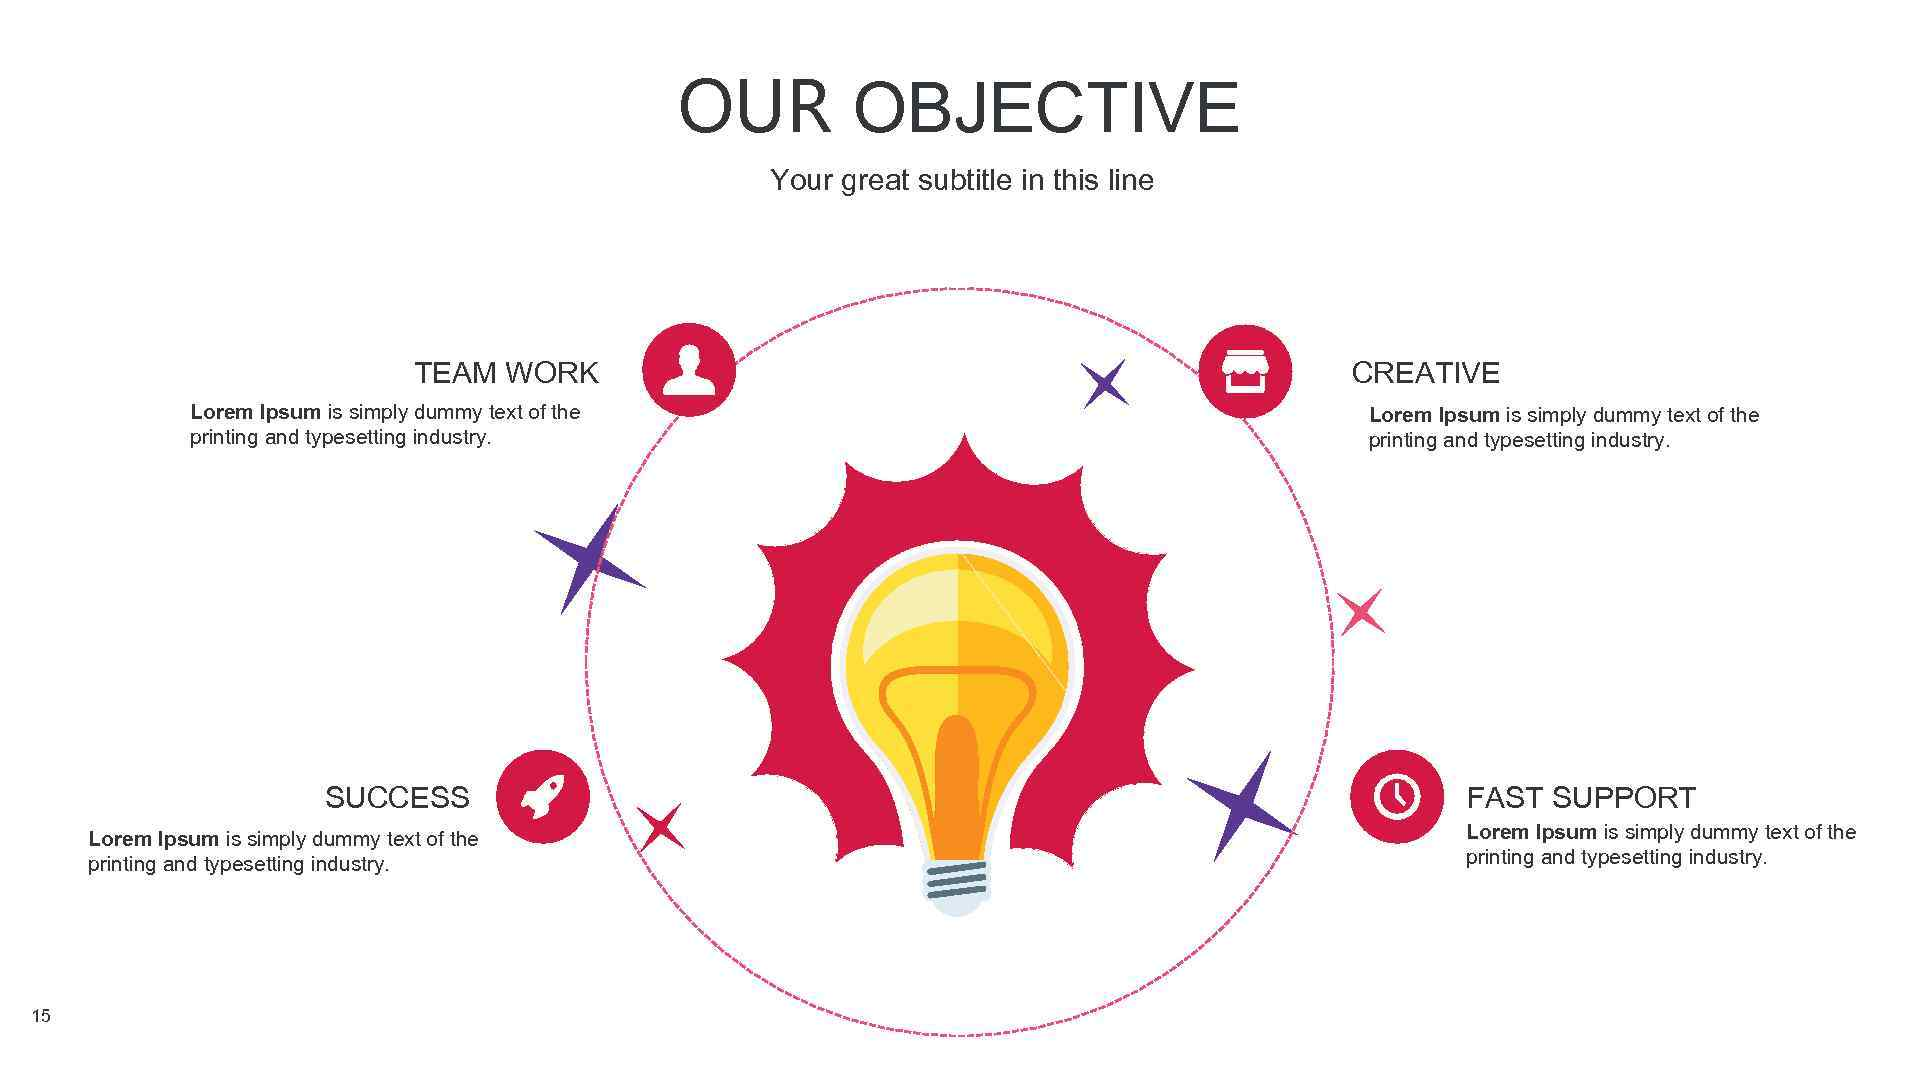 OUR OBJECTIVE Your great subtitle in this line TEAM WORK Lorem Ipsum is simply